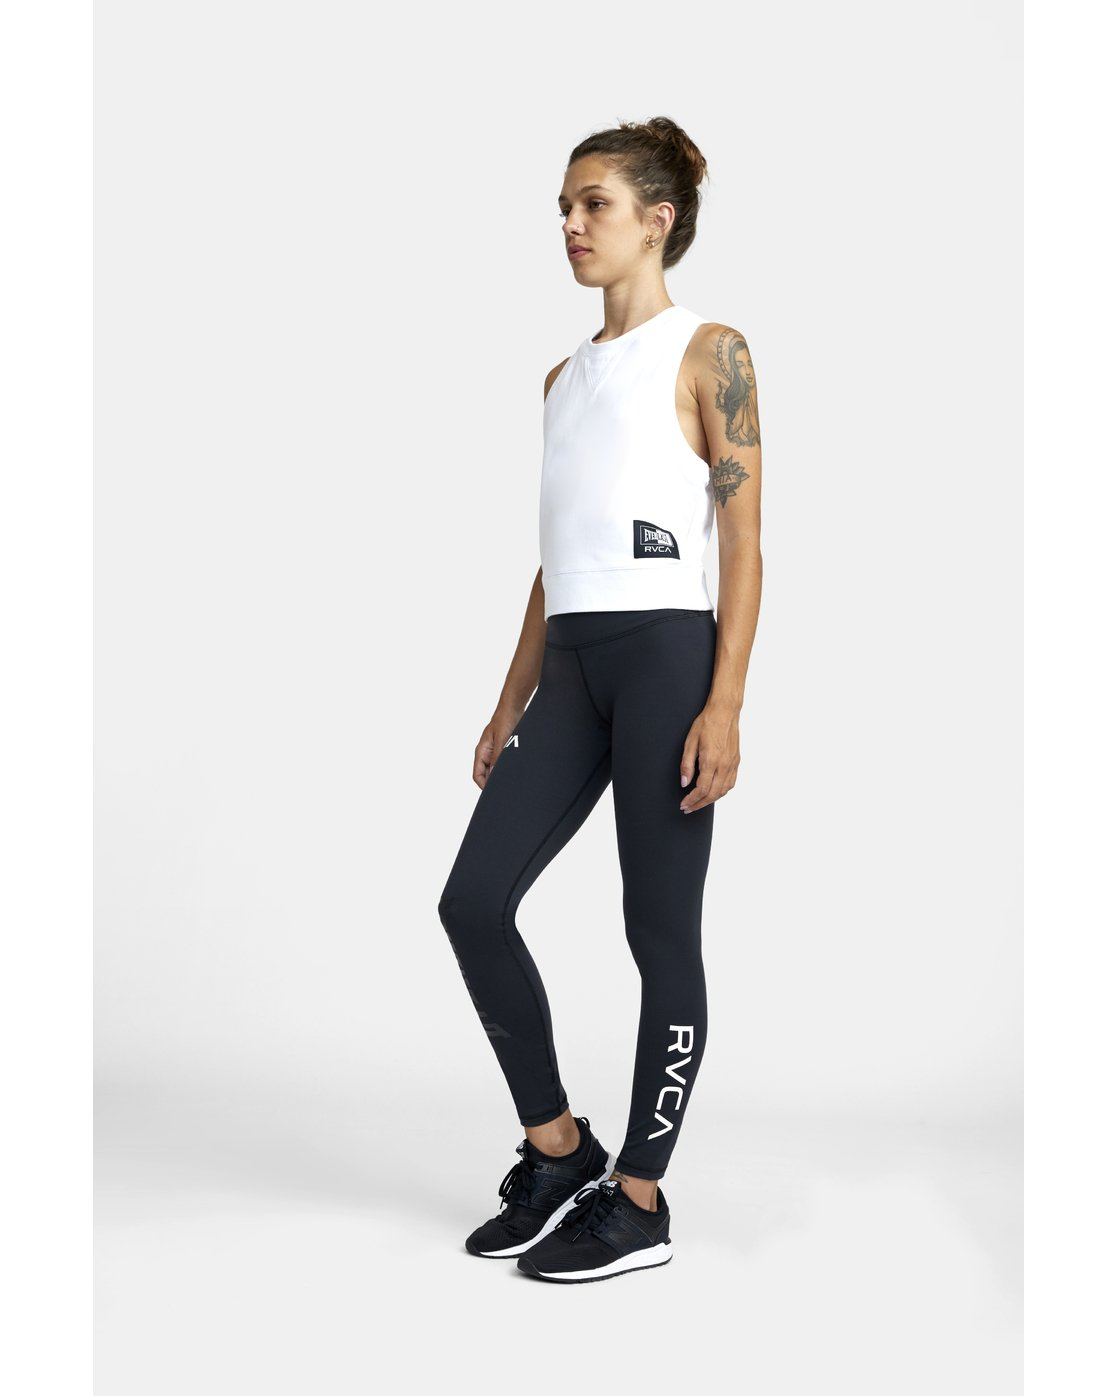 2 EVERLAST SPORT WORKOUT LEGGING Black TQ163REL RVCA